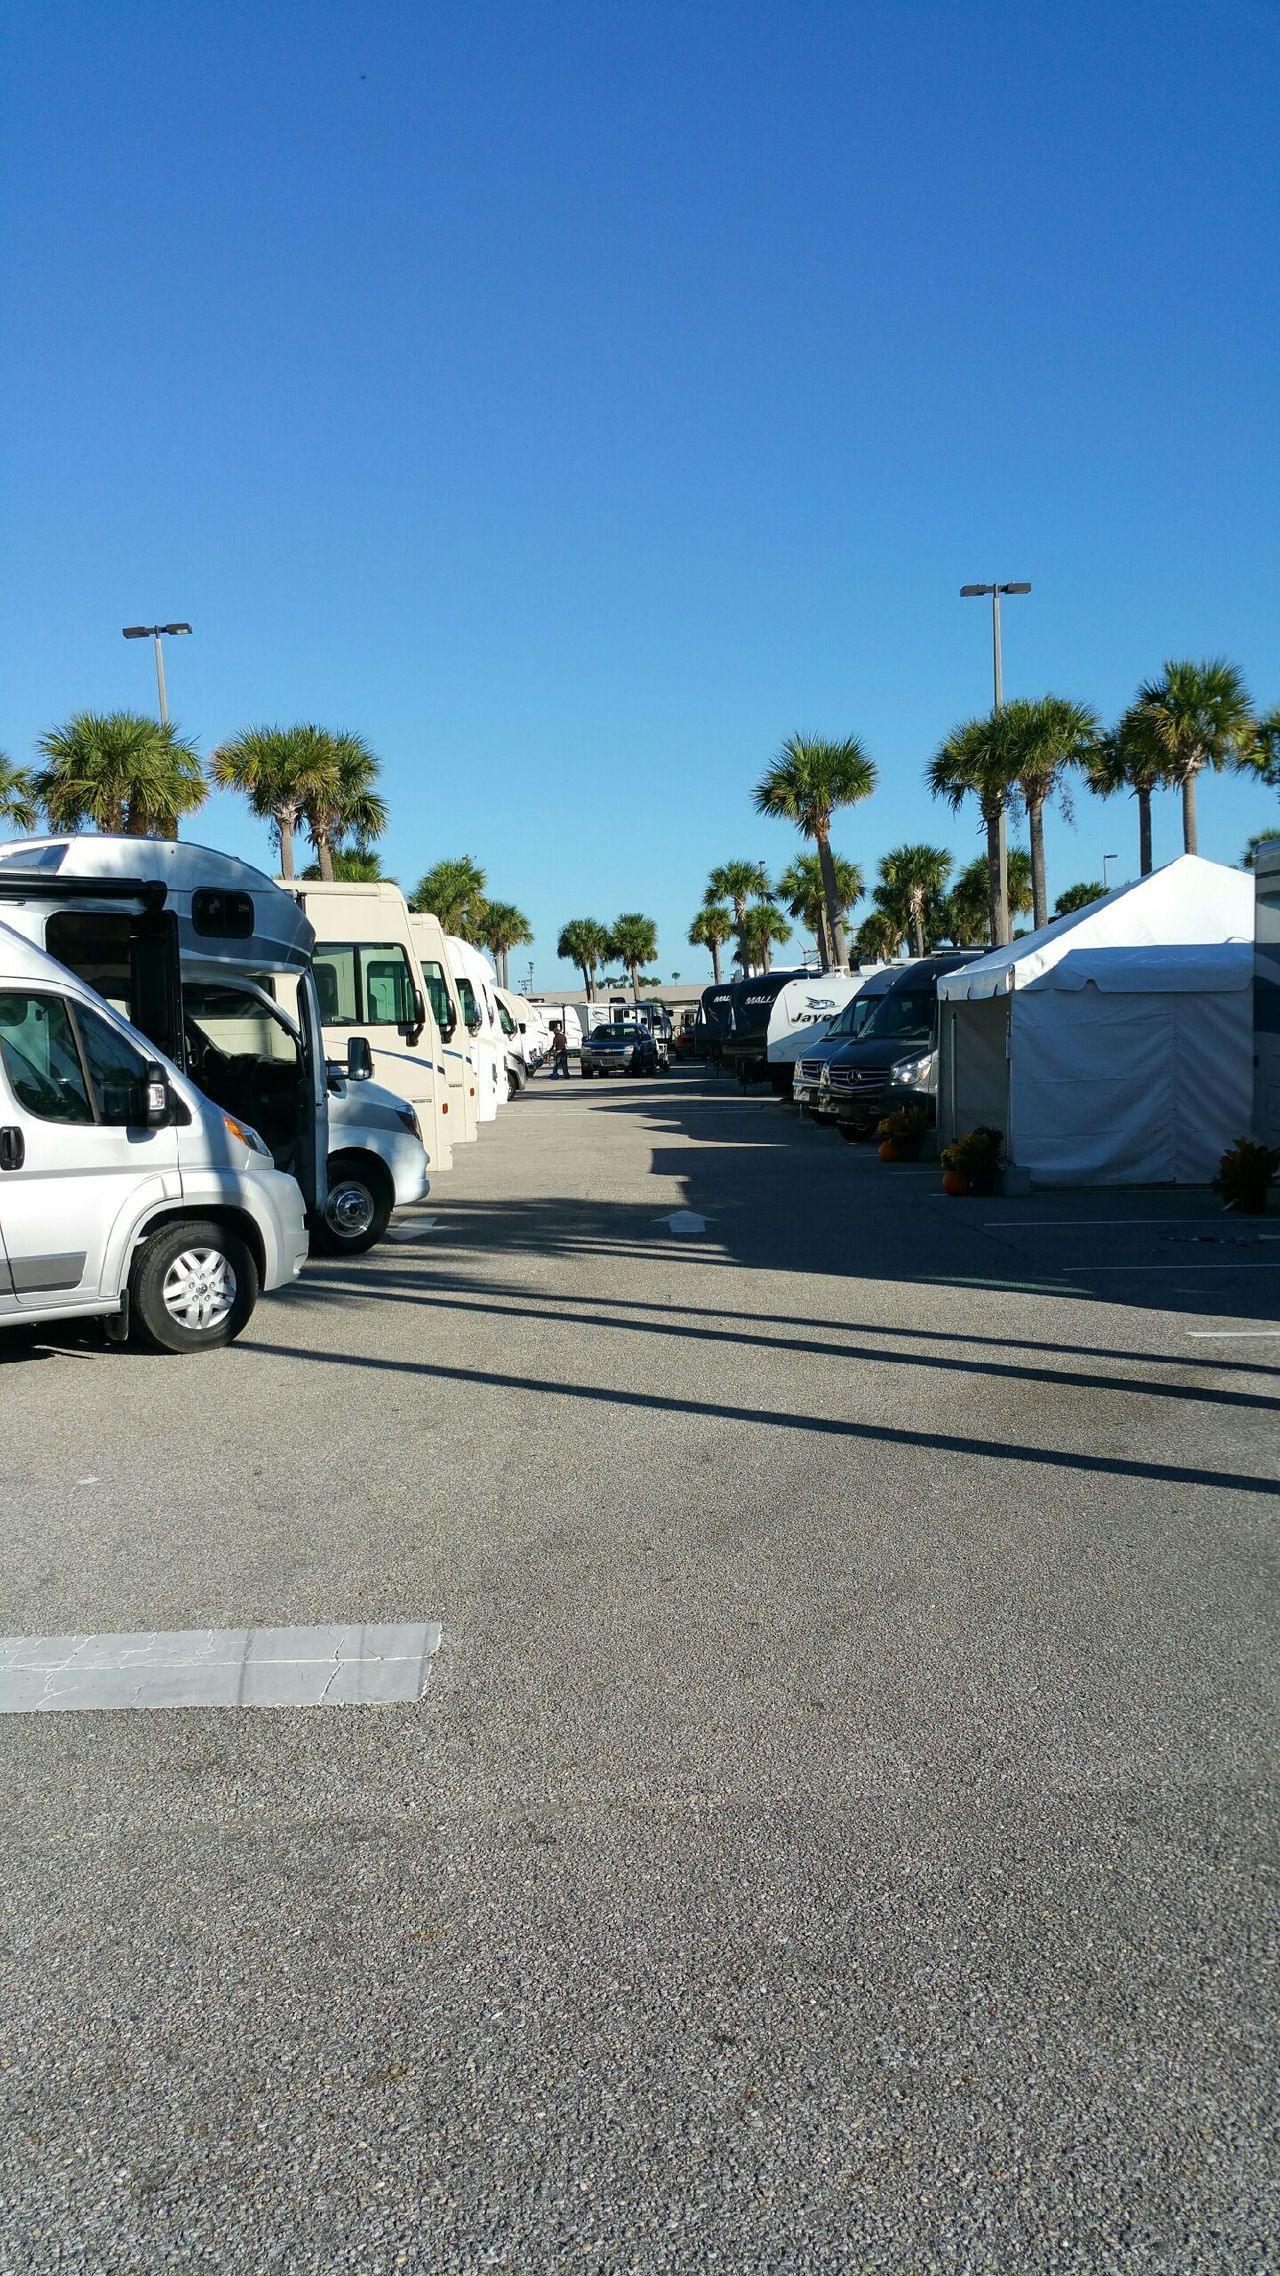 The 2017 Panhandle Rv Show Starts Today Hope To See You There Http Www Frvta Org Show Panhandle Rv Show Utm Campaign Coschedule Utm Rv Show Rv Florida